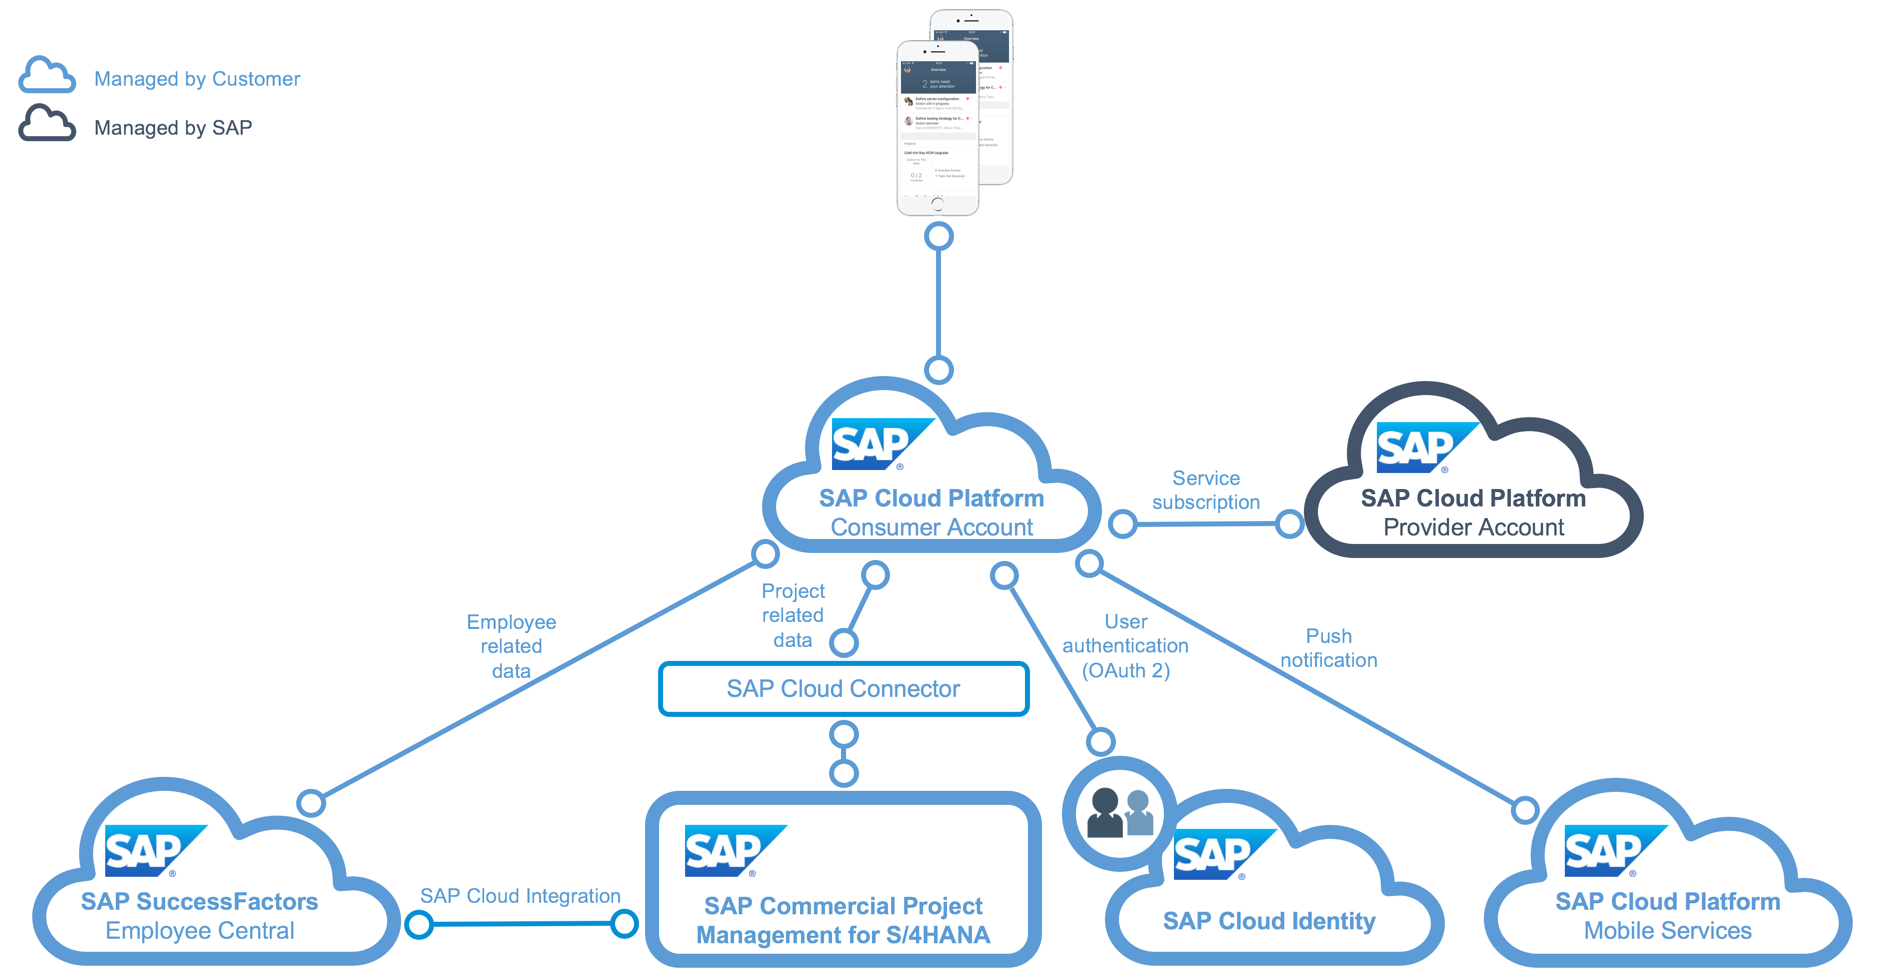 Sap project companion enabled for sap commercial project logic running on the sap cloud platform integrated to sap commercial project management for sap s4hana or sap s4hana professional services cloud xflitez Image collections